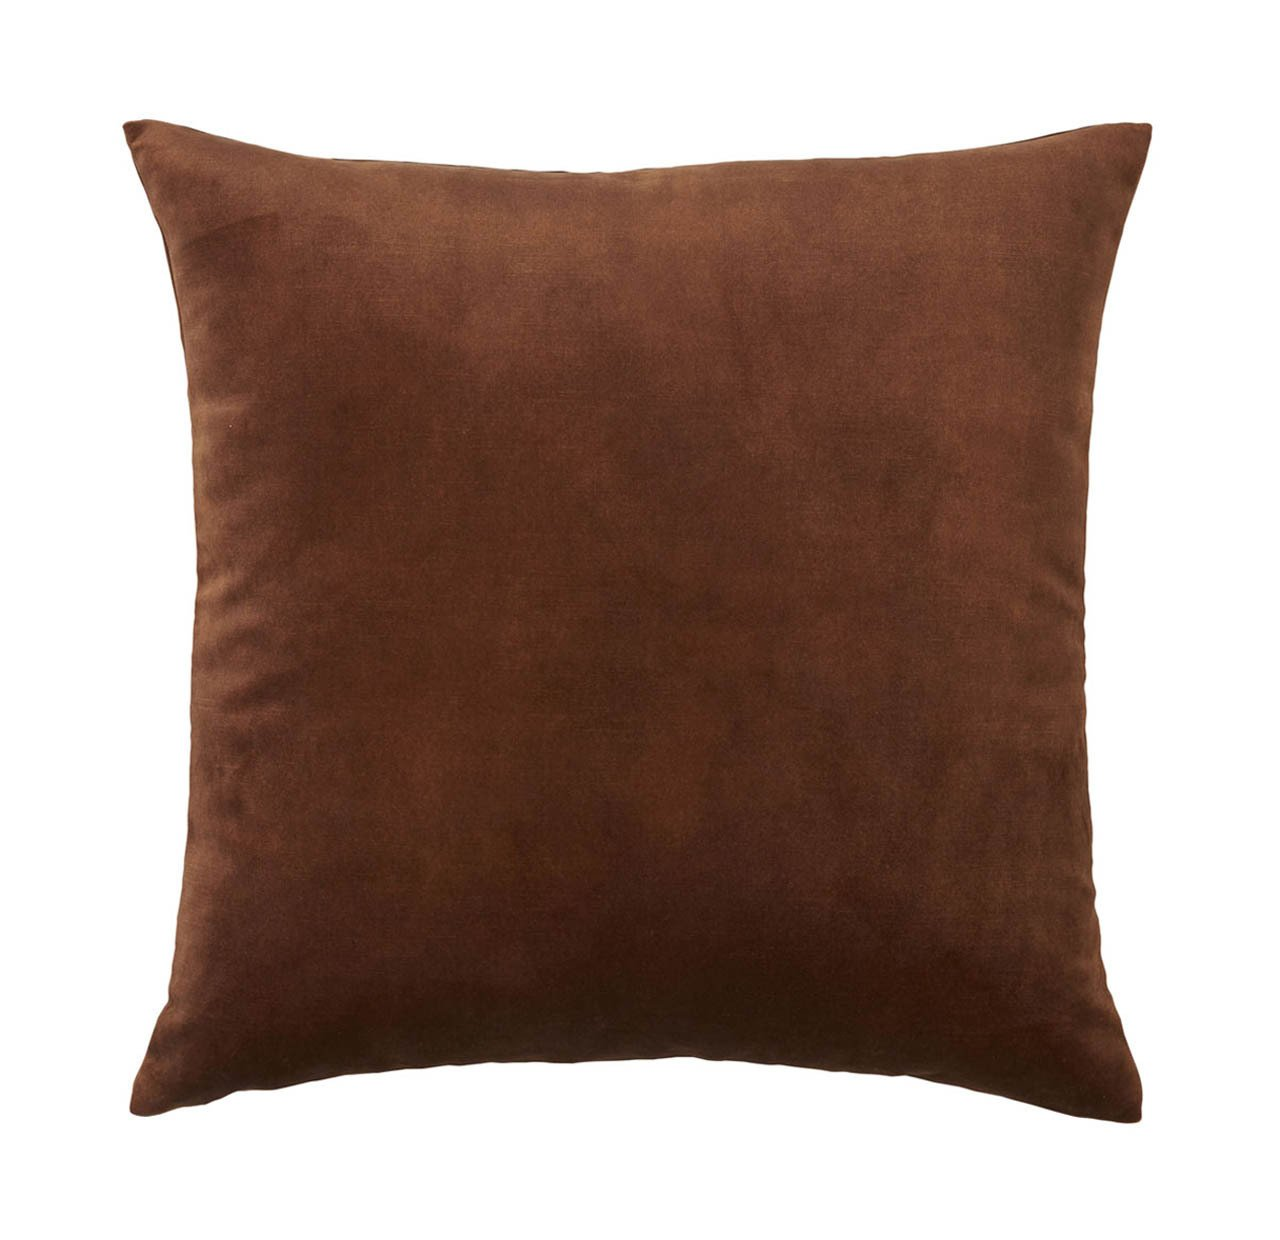 Velvet Ava Cushion - Cinnamon